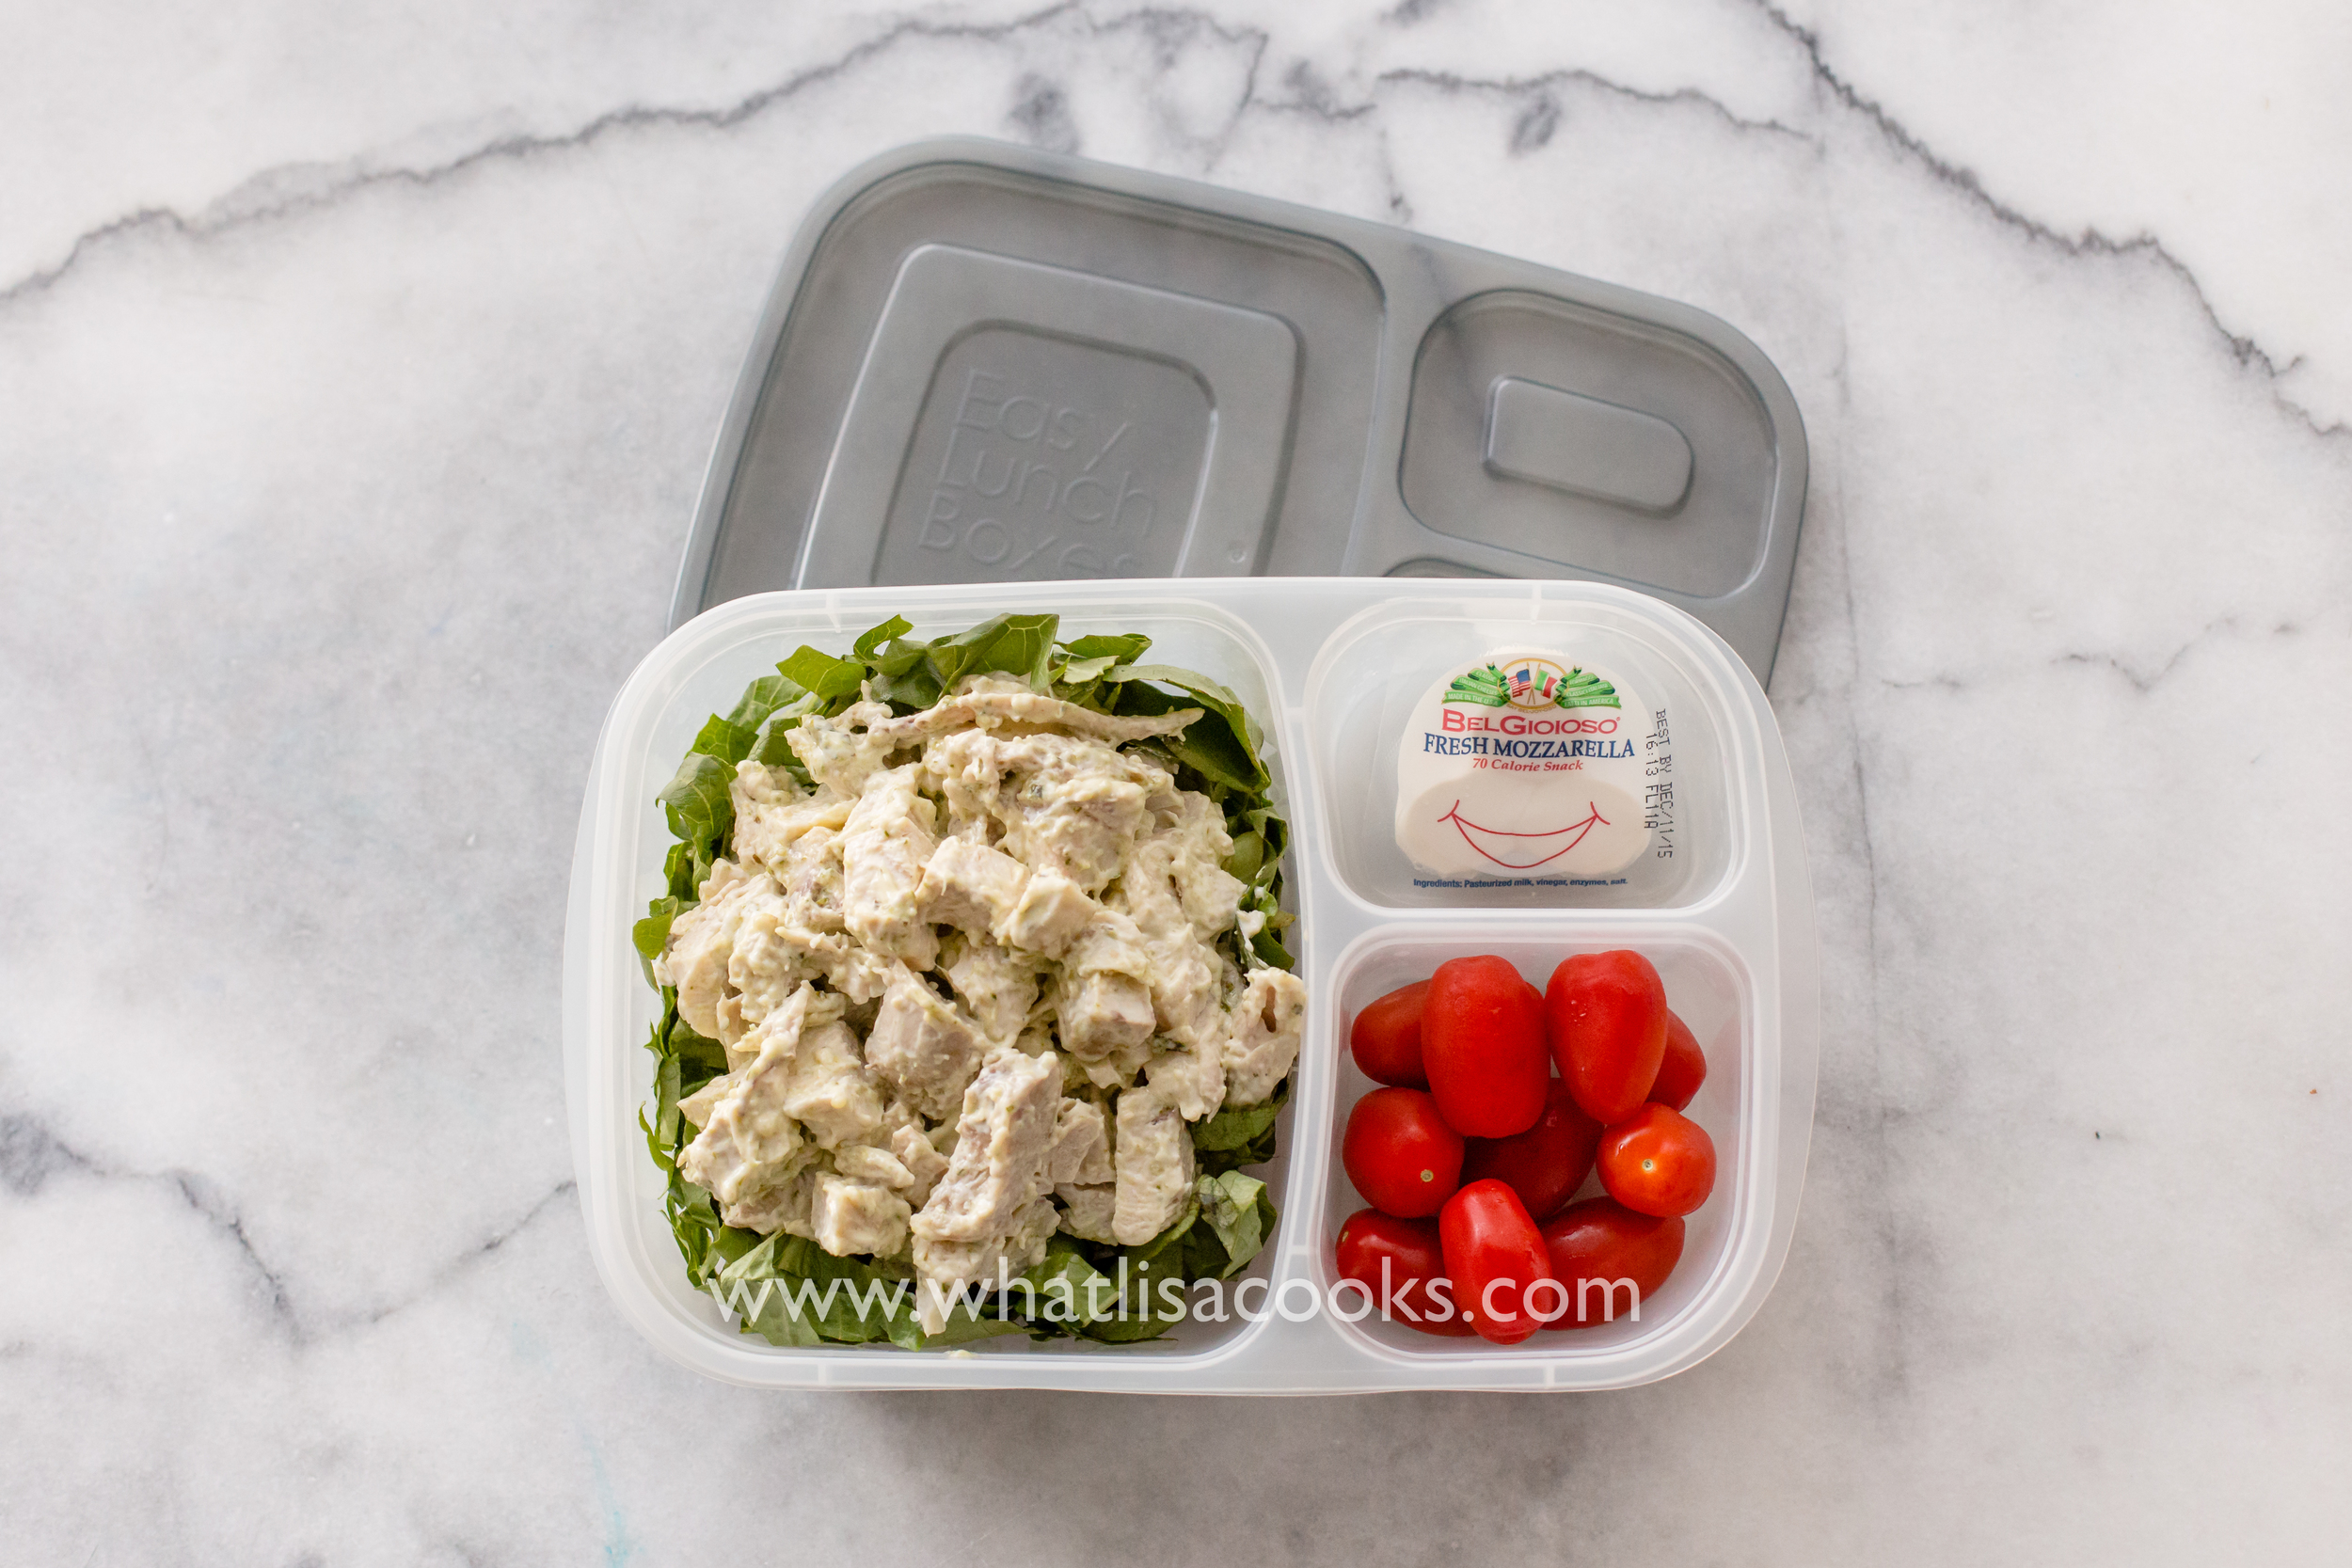 Easy grown up packed lunch from WhatLisaCooks.com - pesto chicken salad